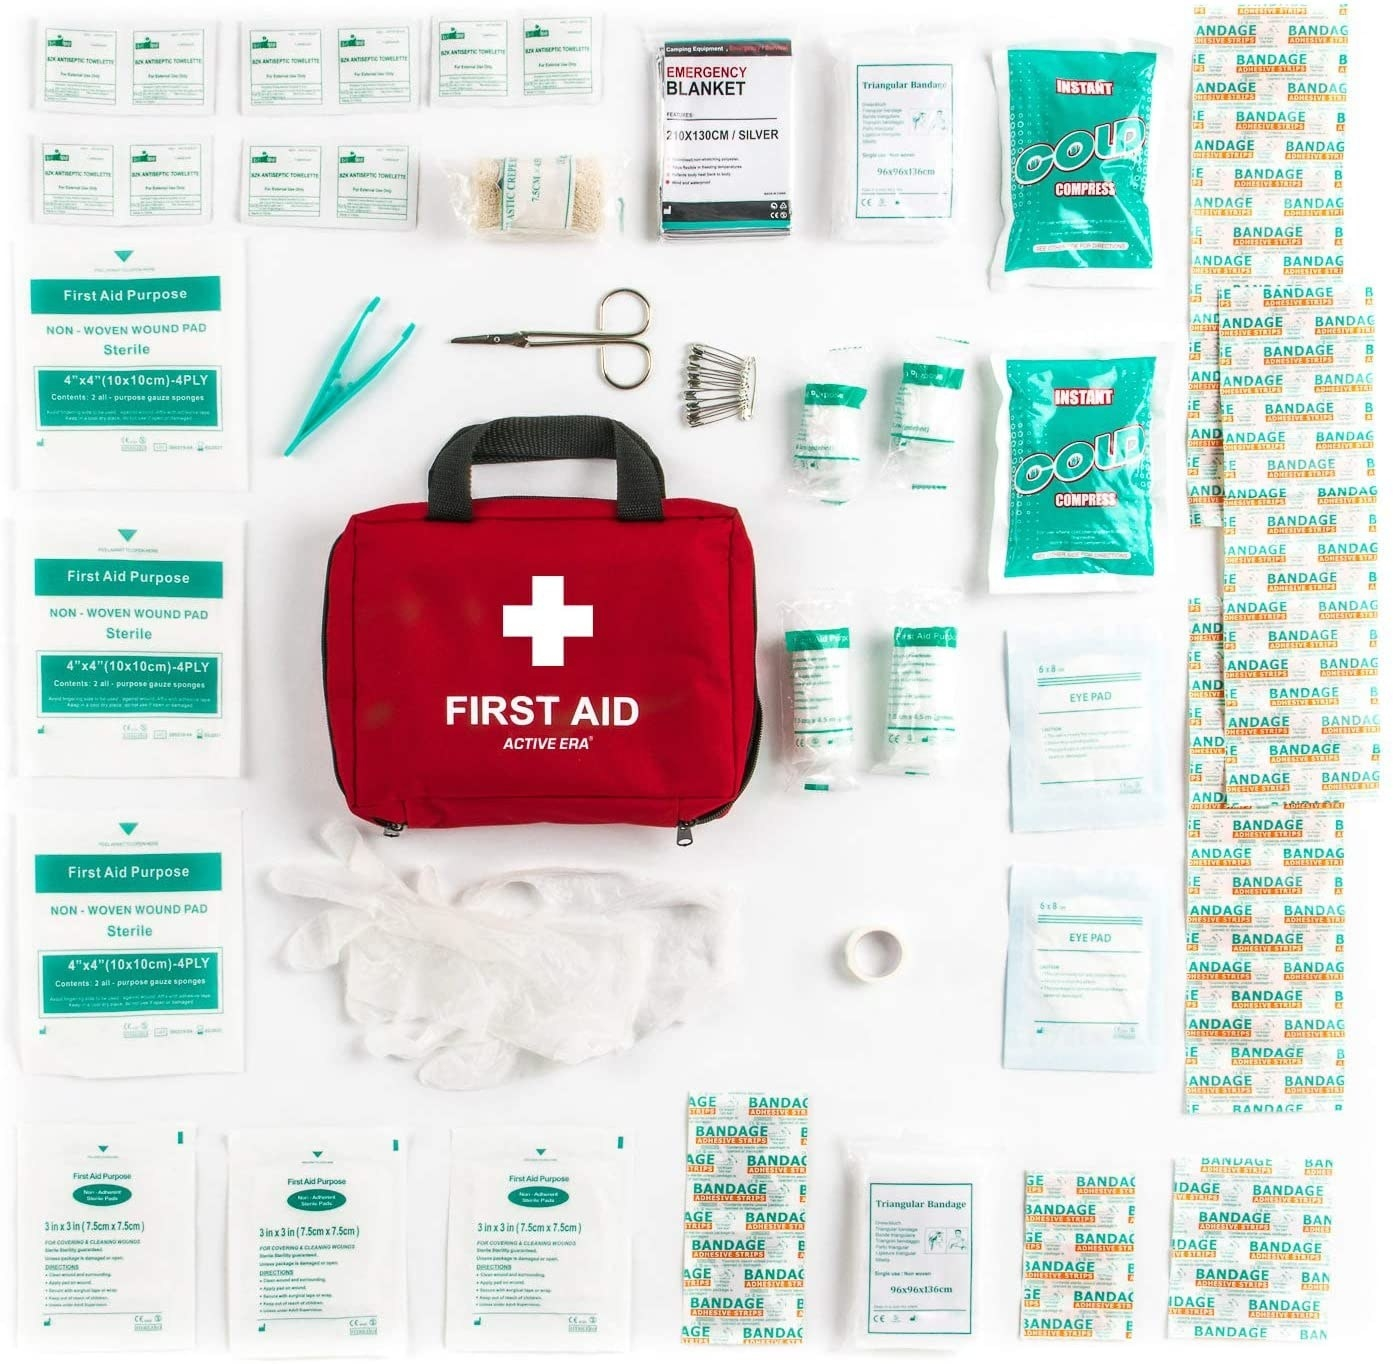 A red first aid bag with its contents neatly arranged around it including bandages and rubber gloves